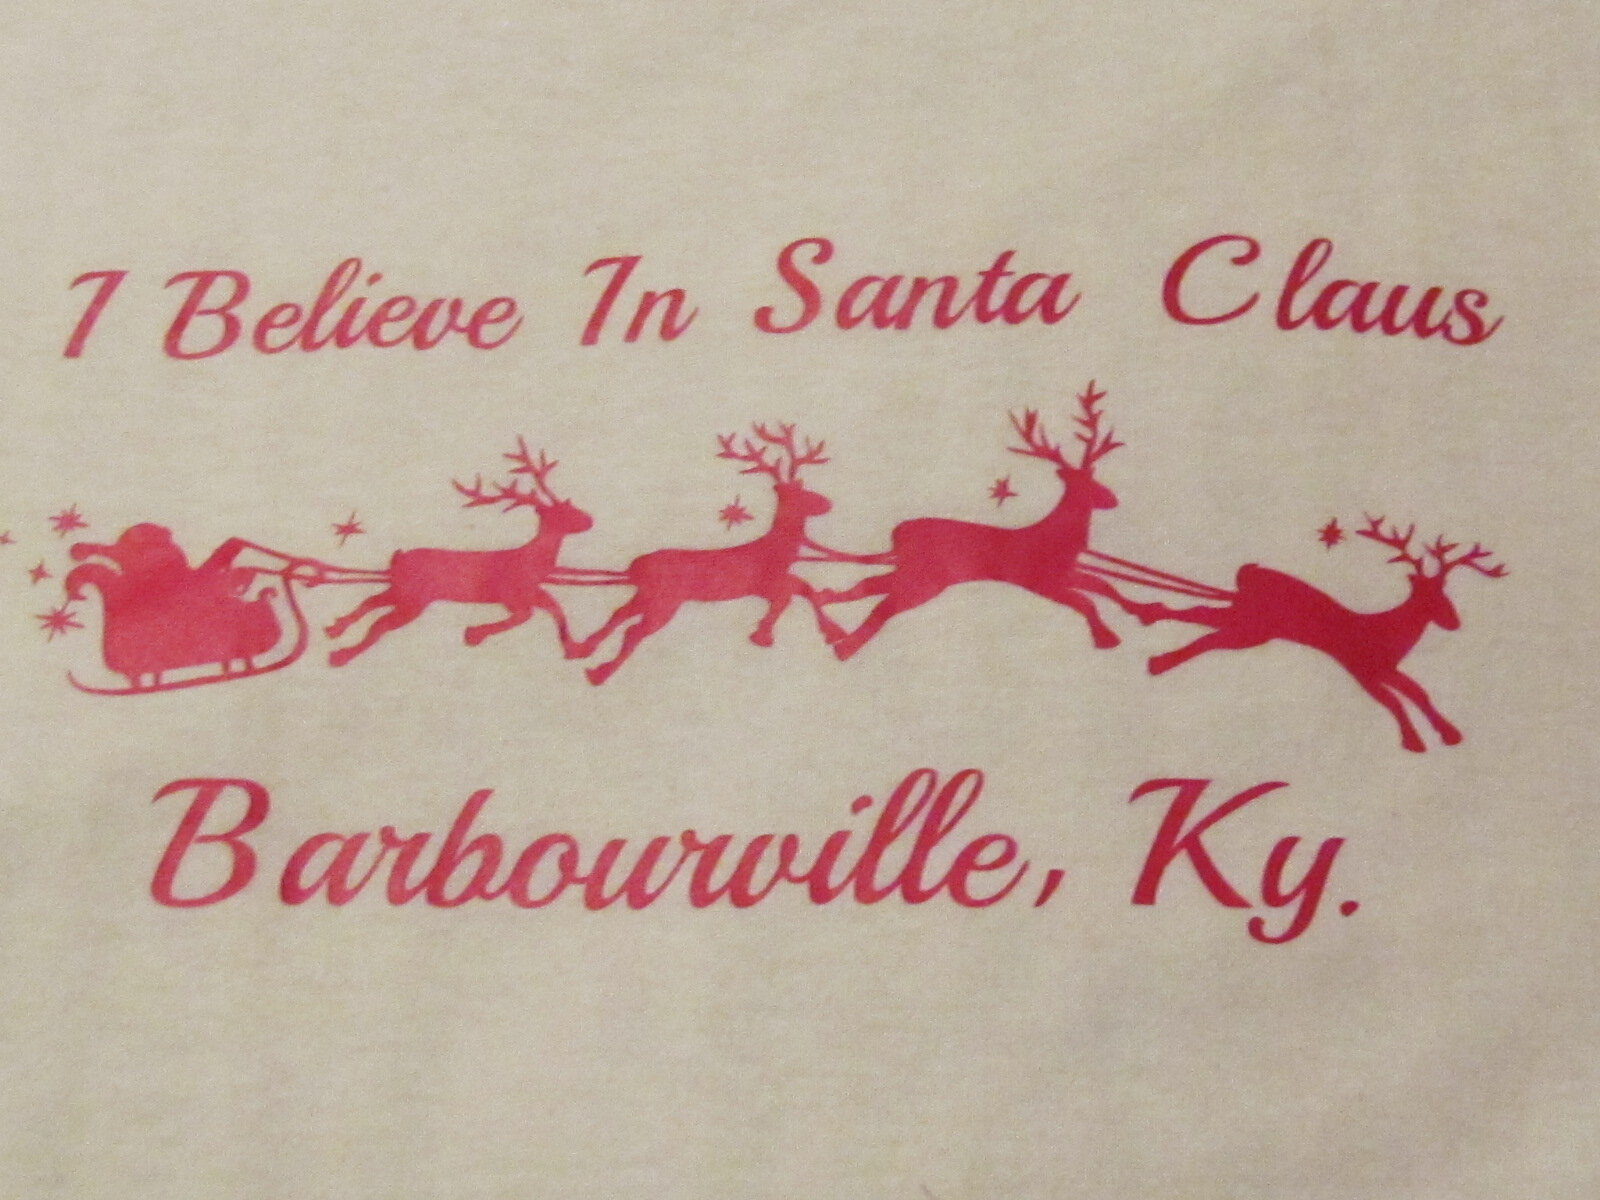 The I Believe In Santa Claus Christmas parade takes place on the first Saturday in December at 6:00 p.m. in Barbourville, KY.